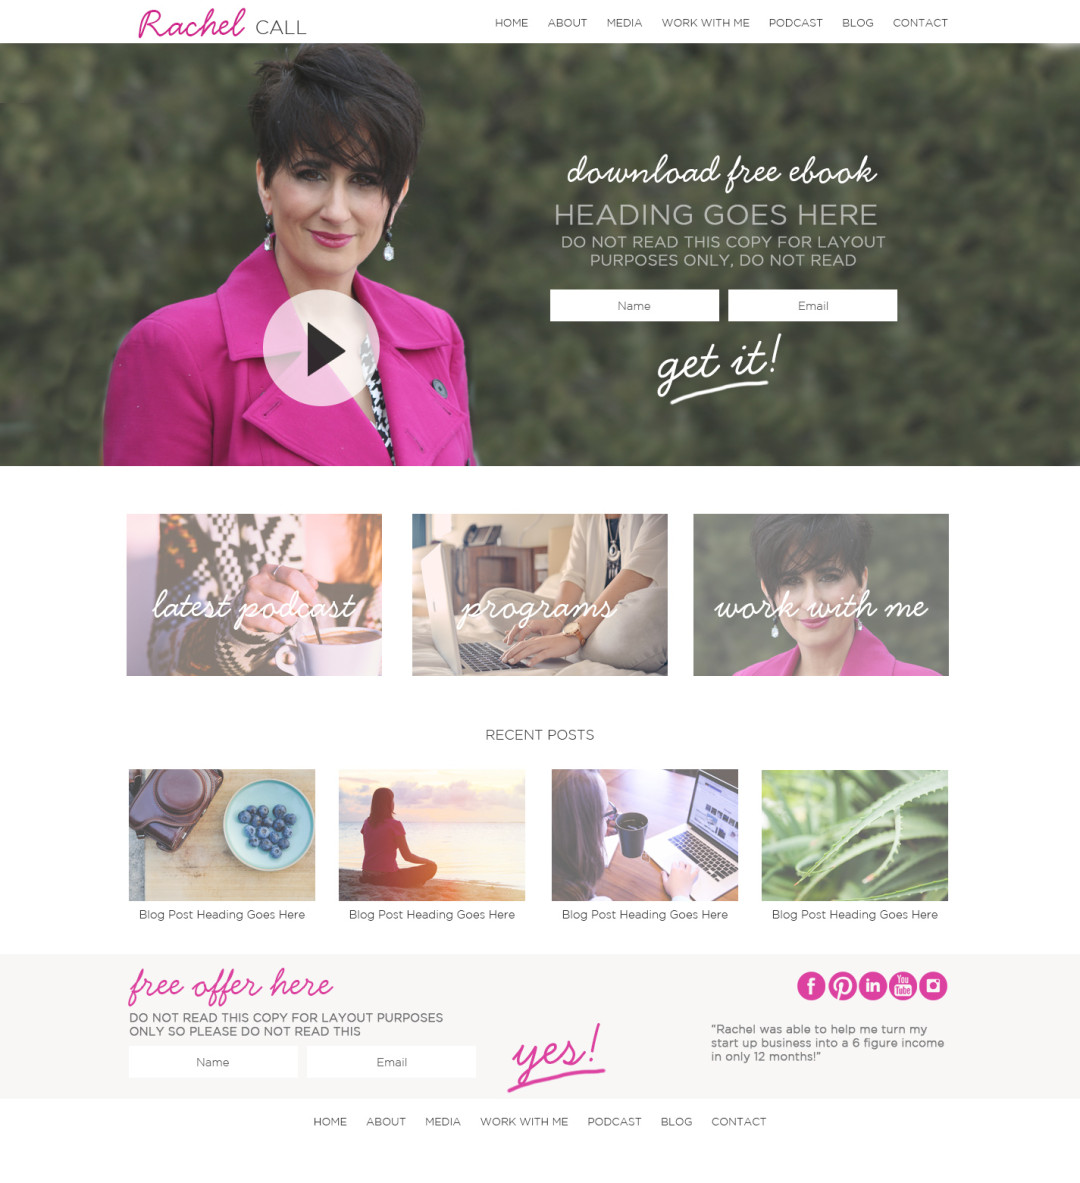 Custom Designed Wordpress Website for Rachel Call